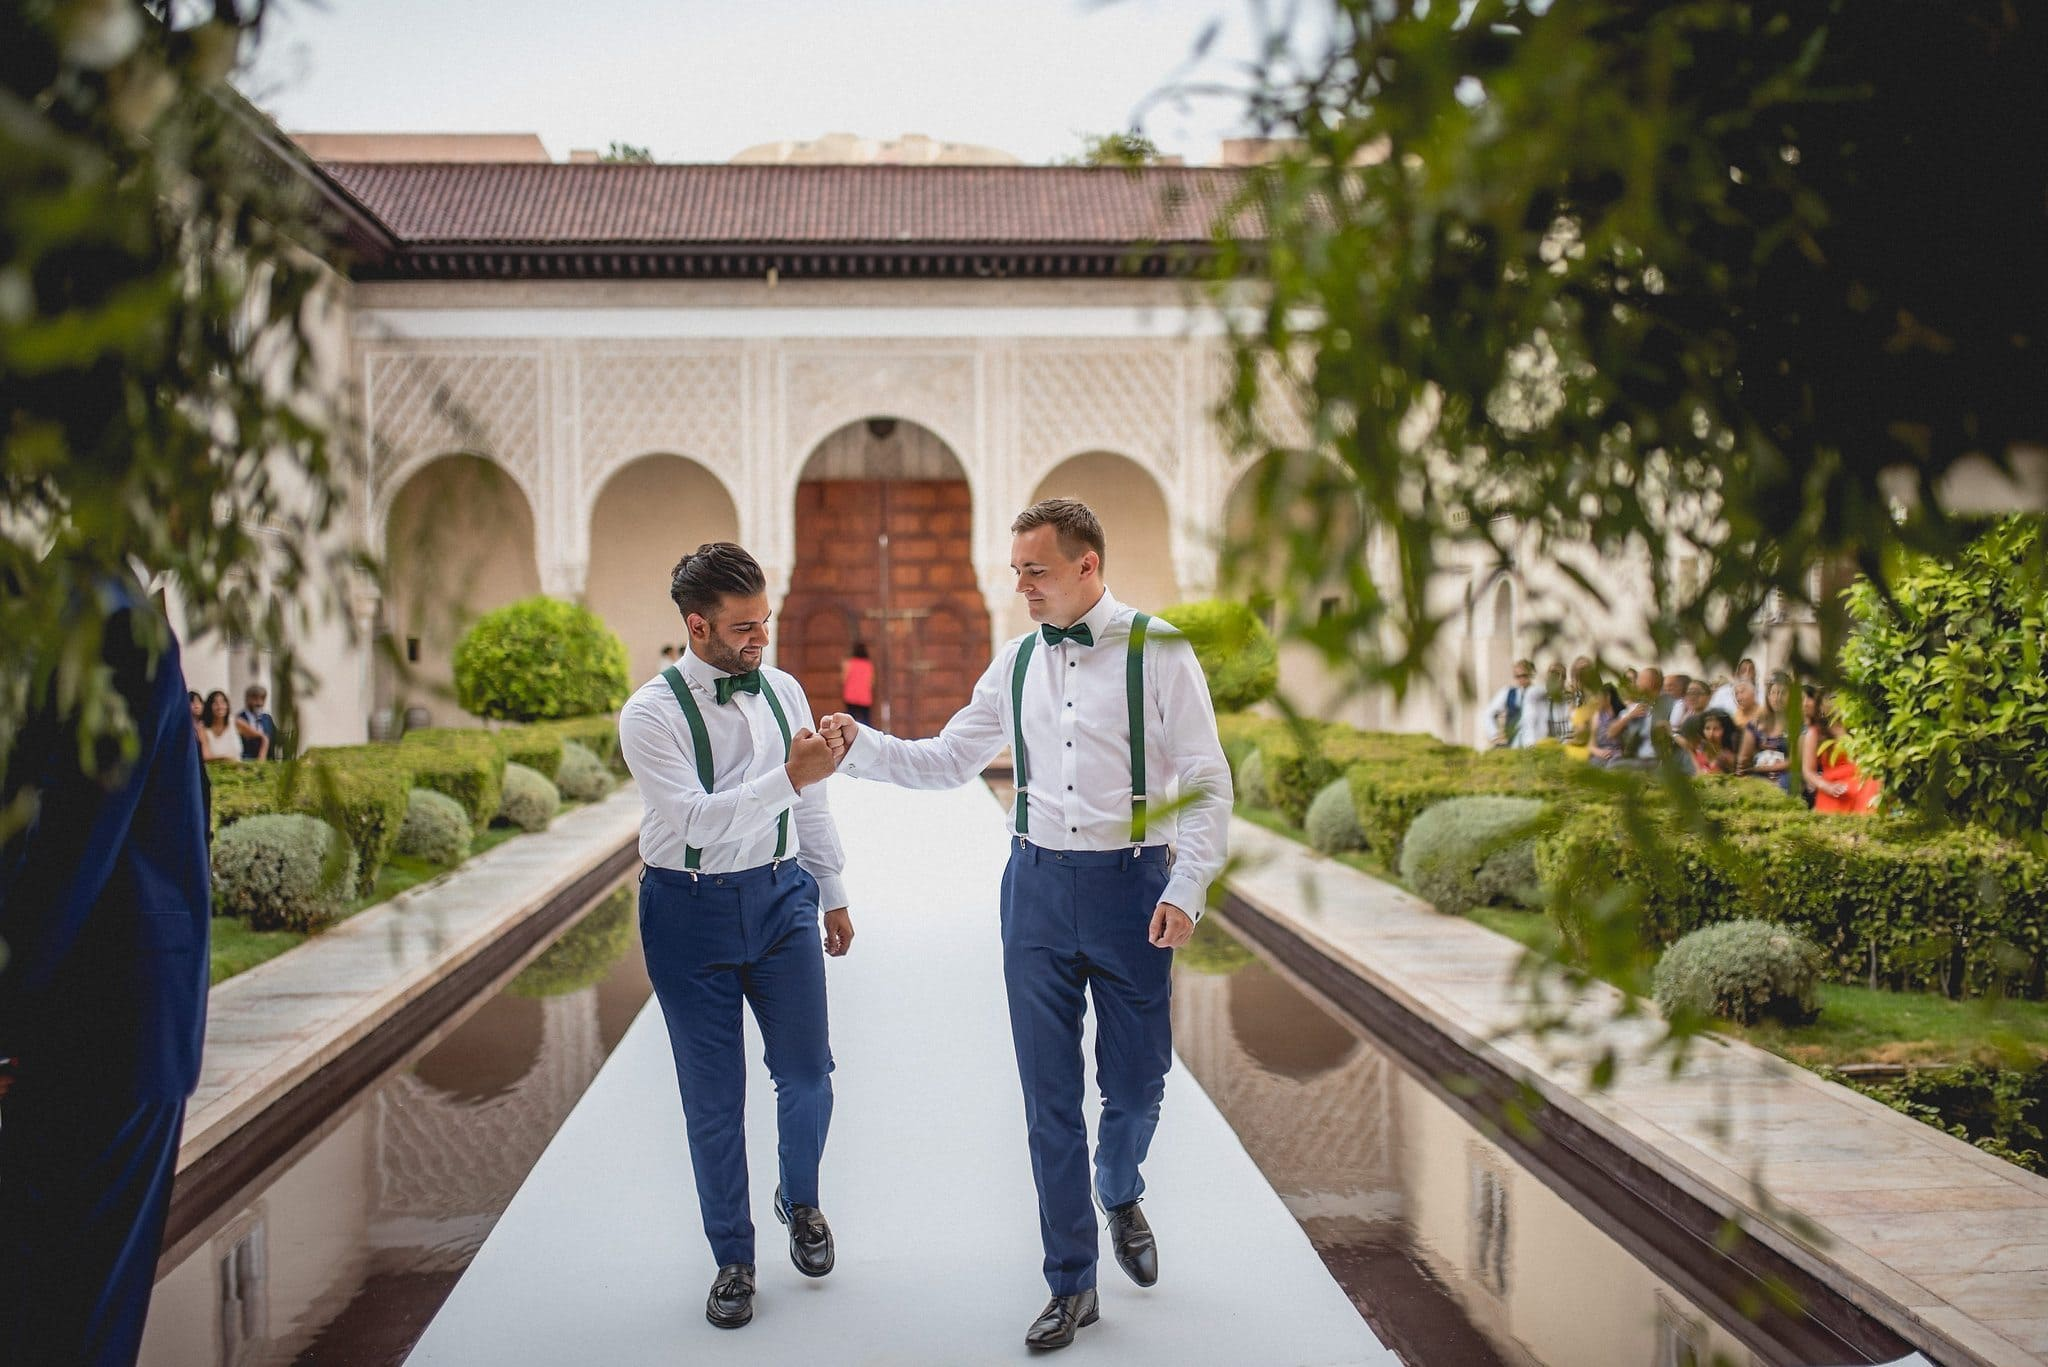 Two of the groomsmen fist bump as they reach the end of the aisle